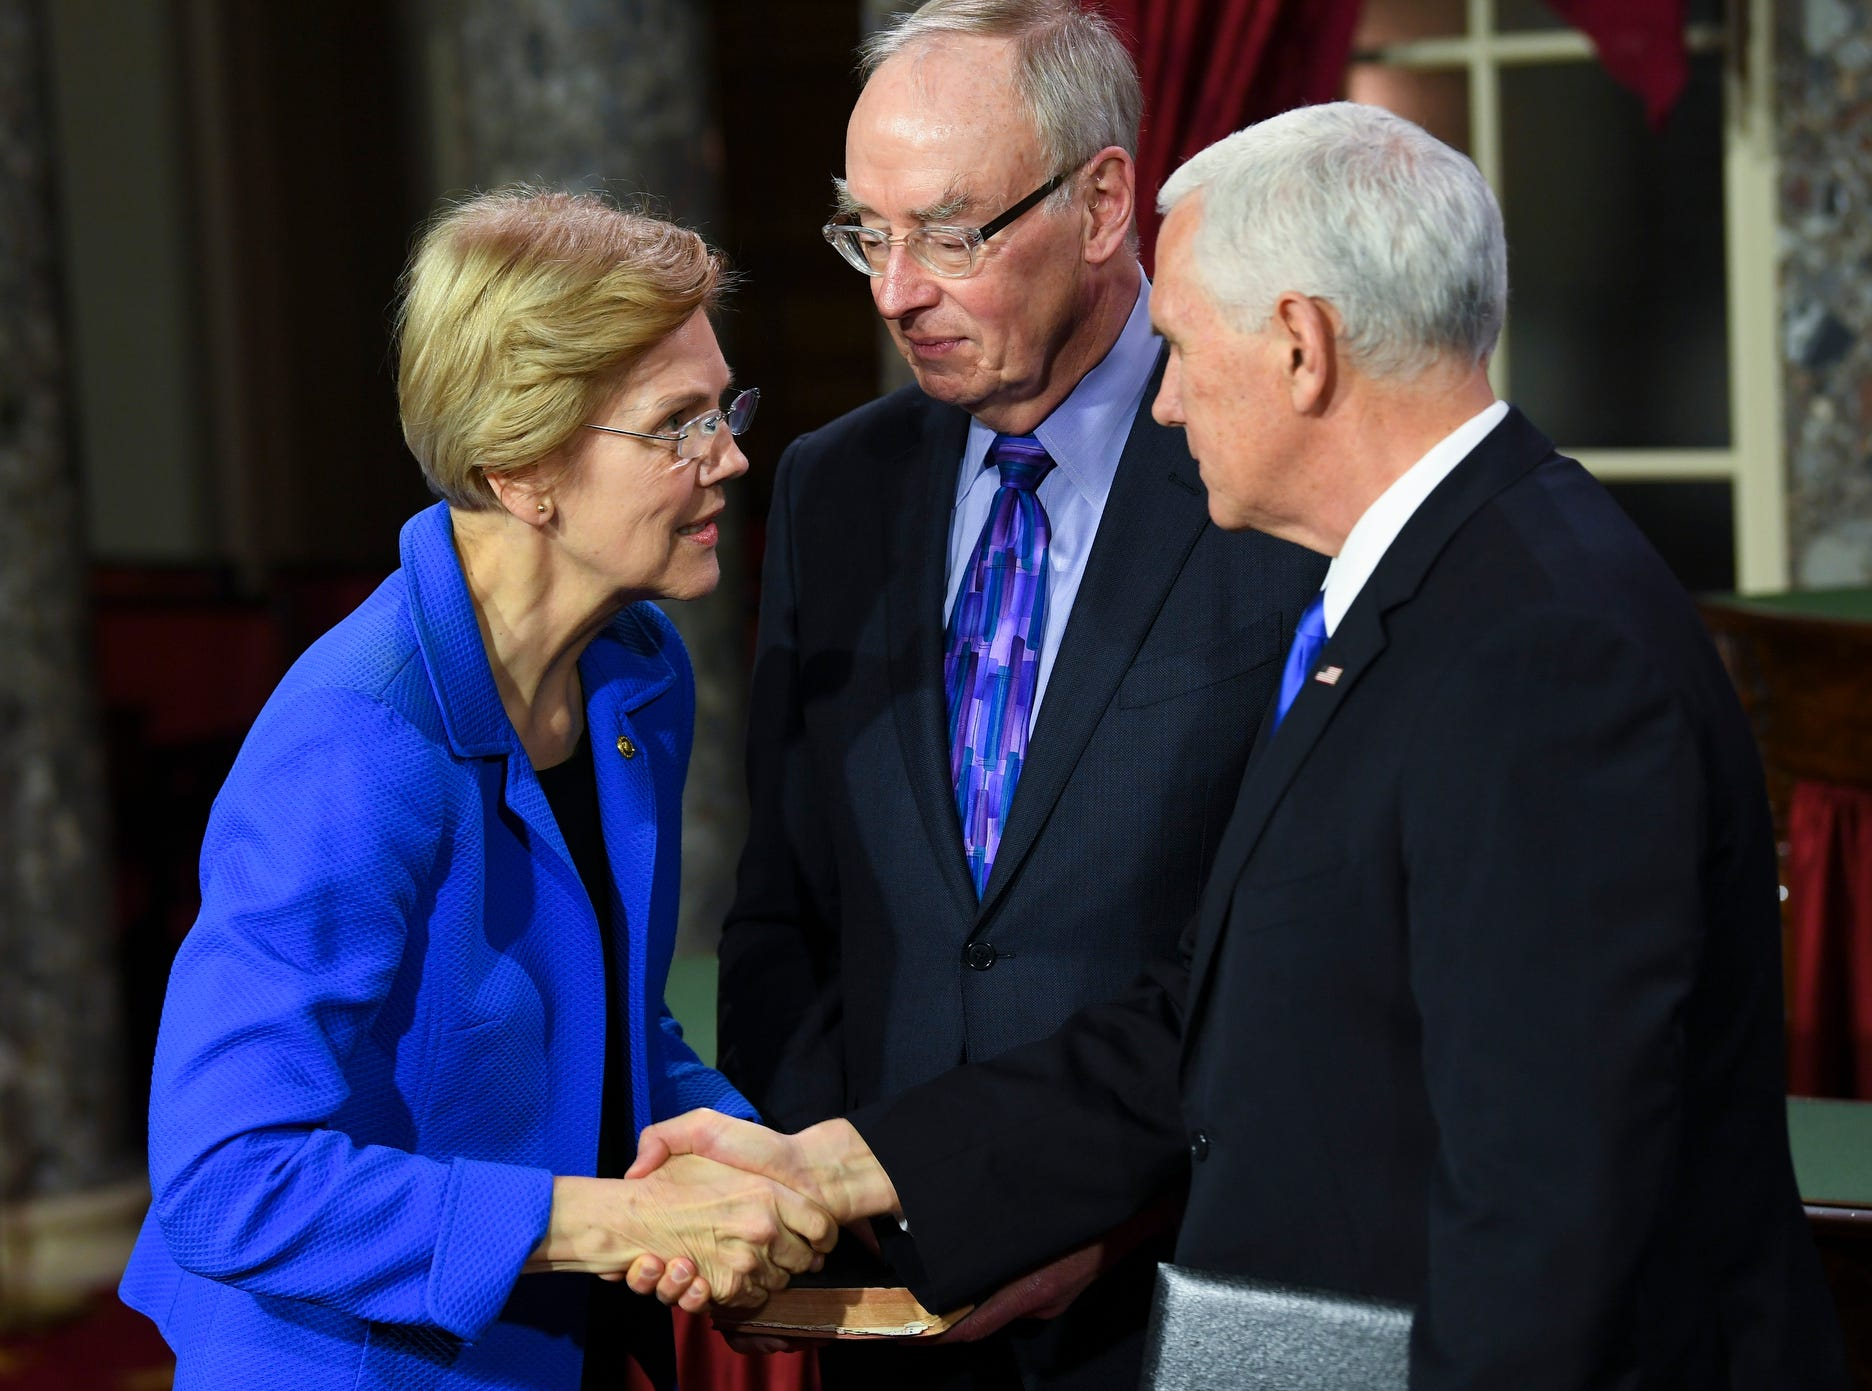 Vice President Pence speaking with Senator Elizabeth Warren (D-MA) after he officiated ceremonial swearing of Senator Warren in the Old Senate Chambers at the U.S. Capitol.